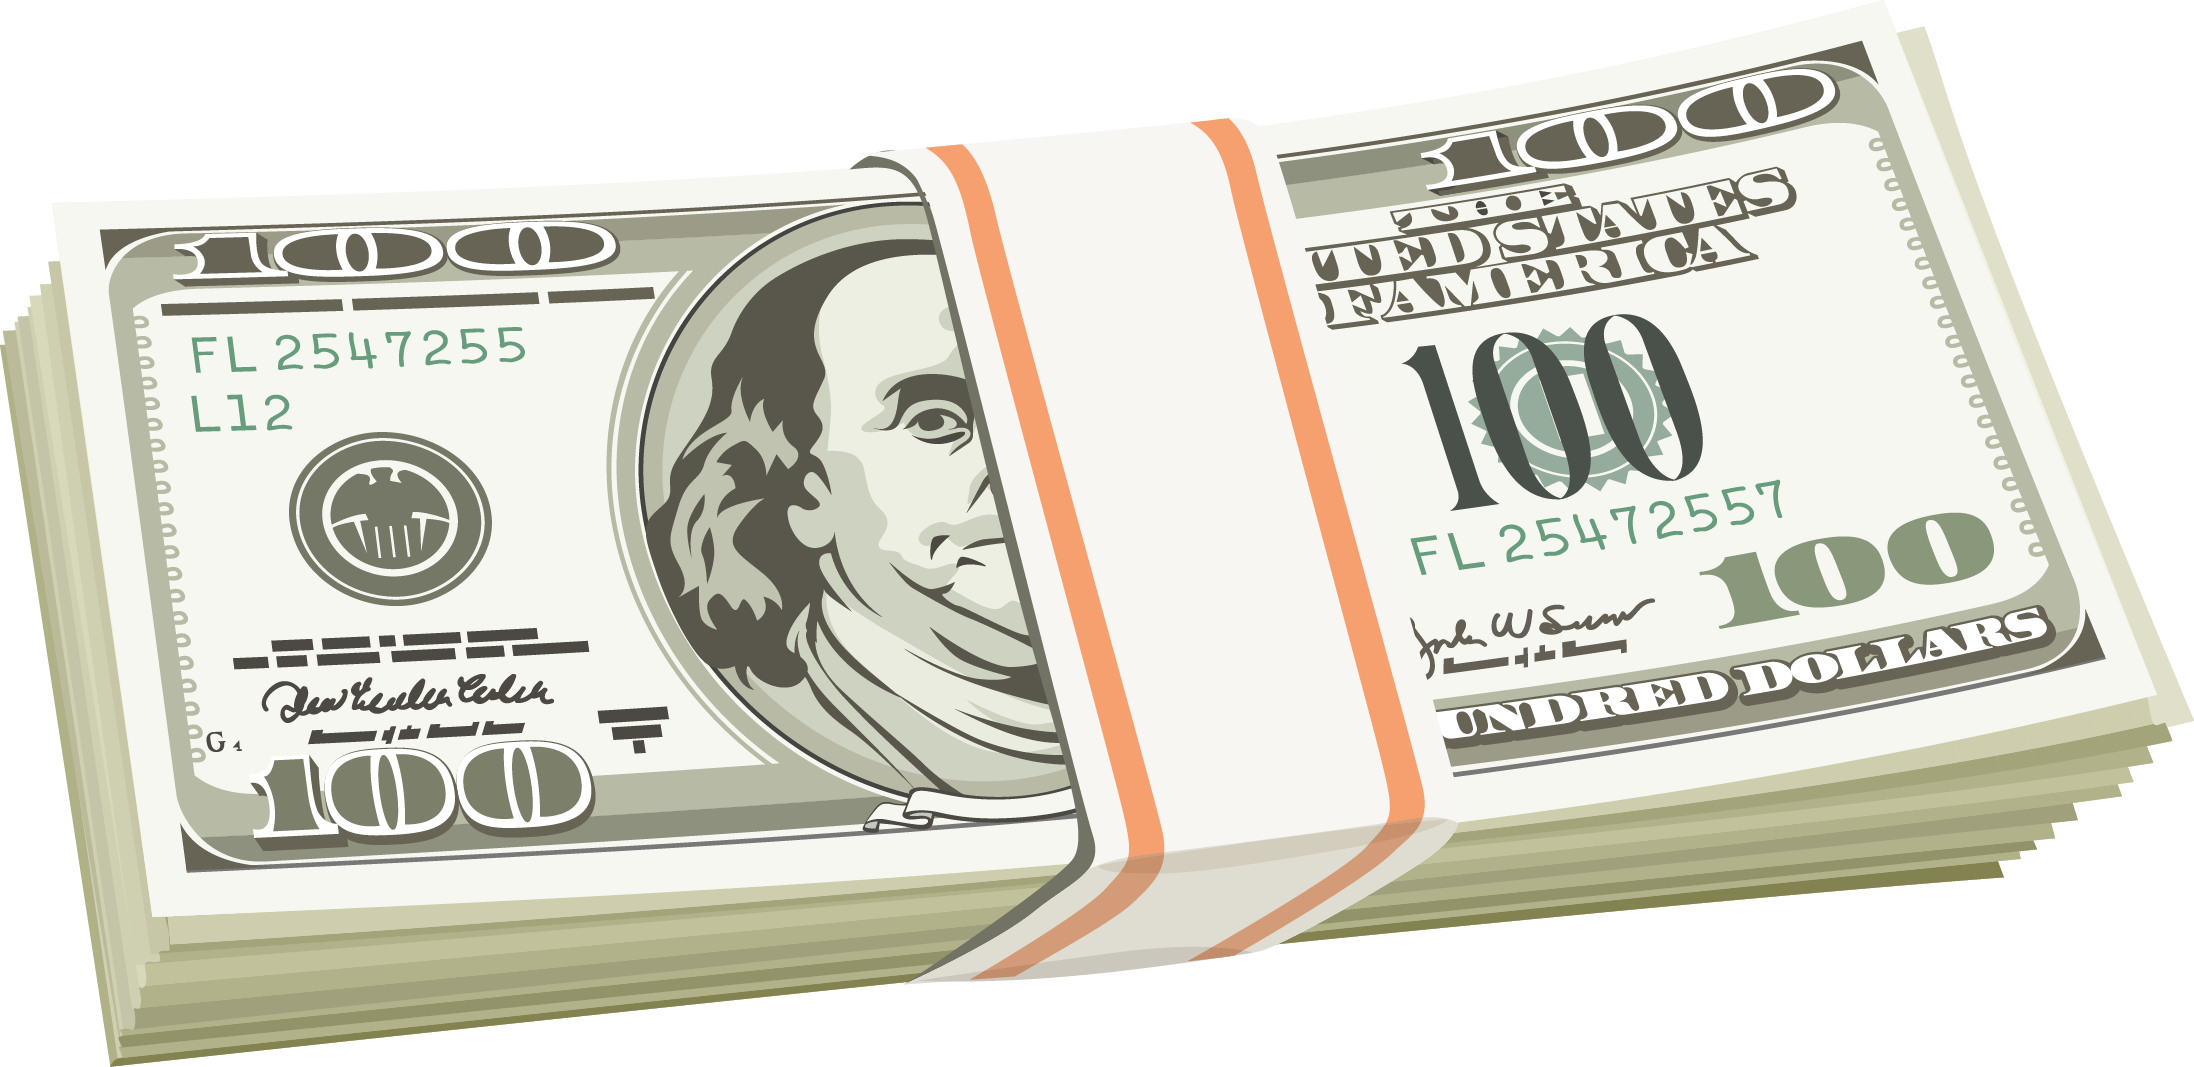 United Computer Money Vectors Dollar States Euclidean PNG Image